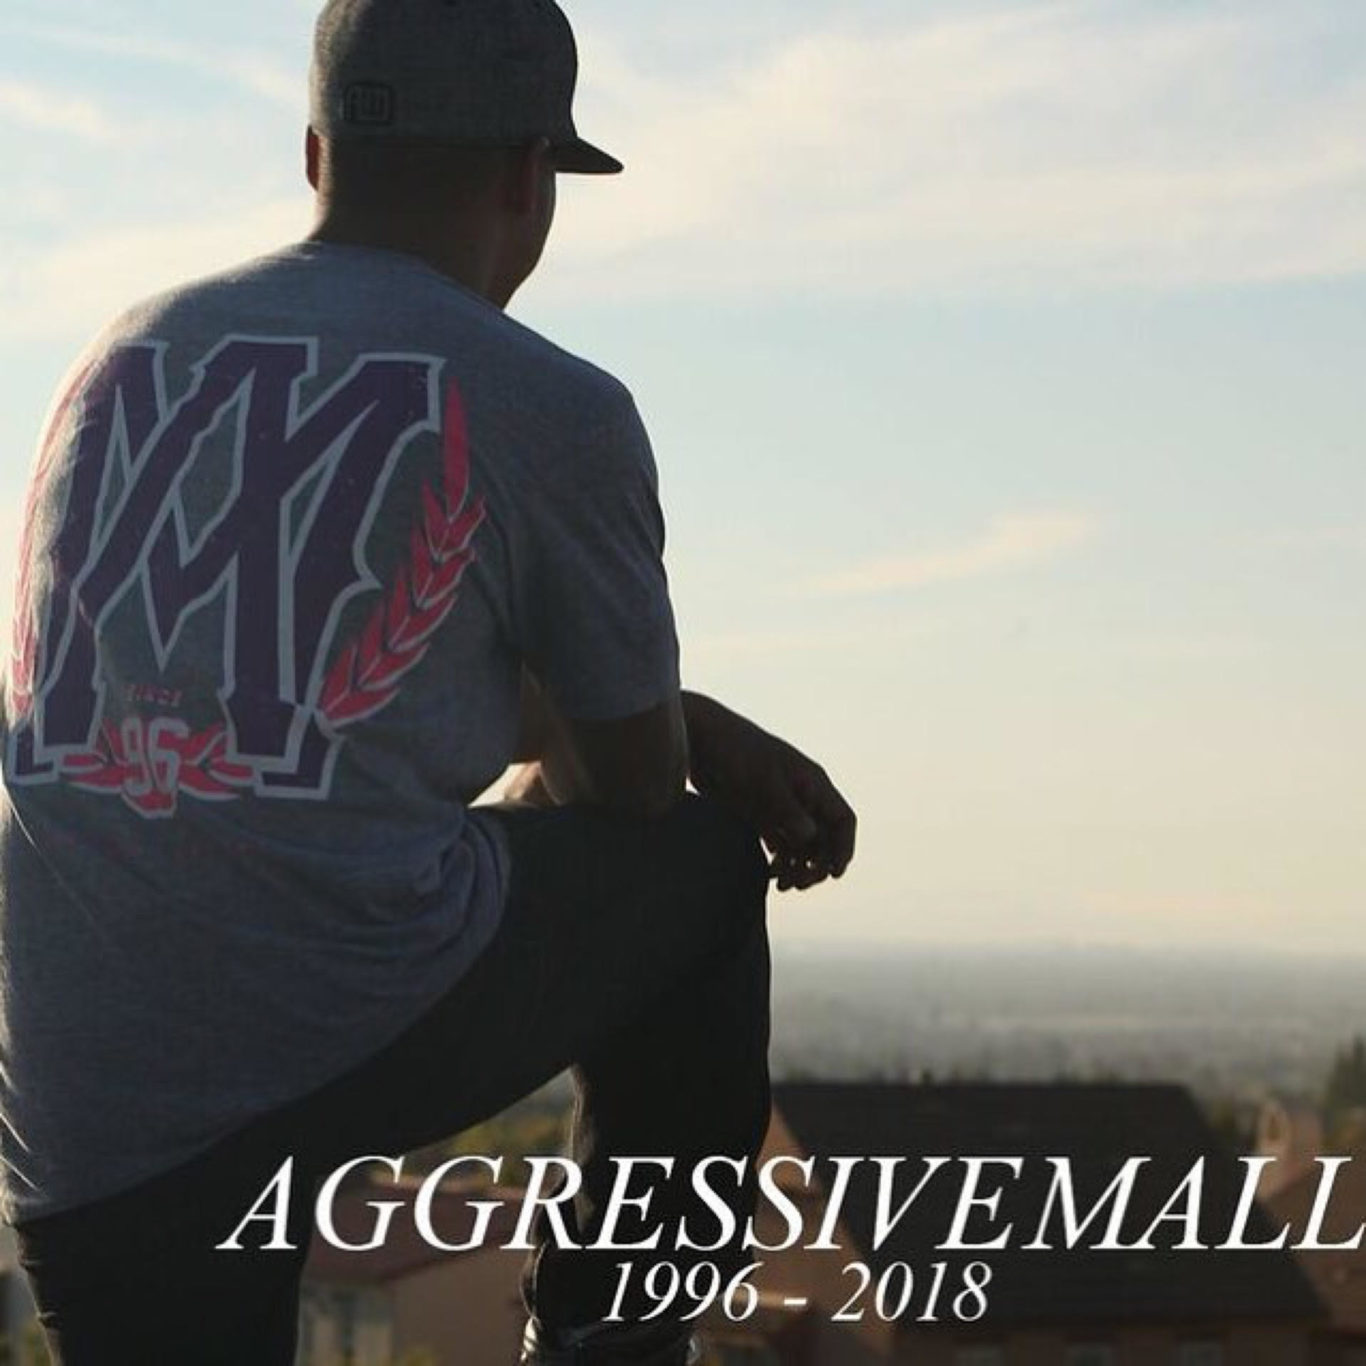 Aggressive Skating Forum Discussions about any topic related to vert skating, skatepark tricks, aggressive street skating, action sports events, and the aggressive skating lifestyle.